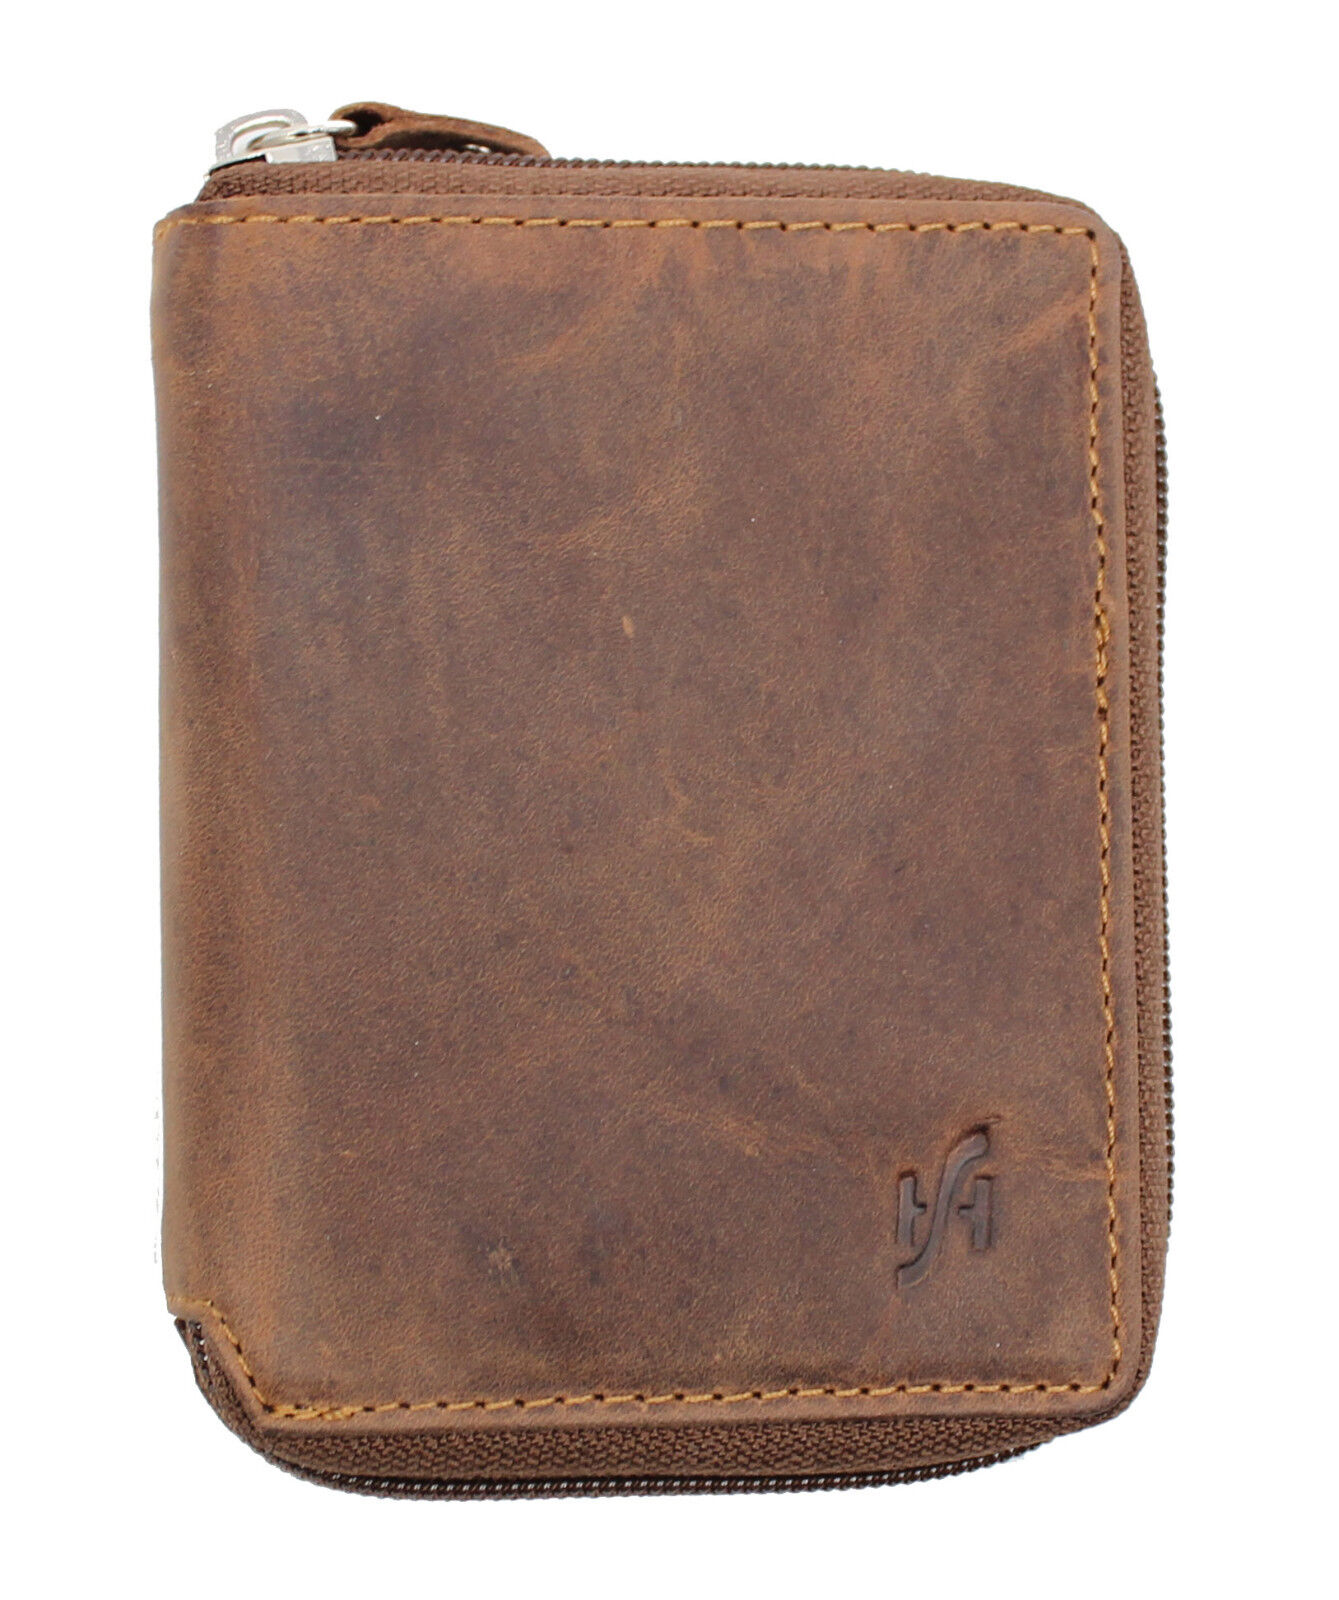 Full Zip Around Distressed Hunter Leather Wallet Brown